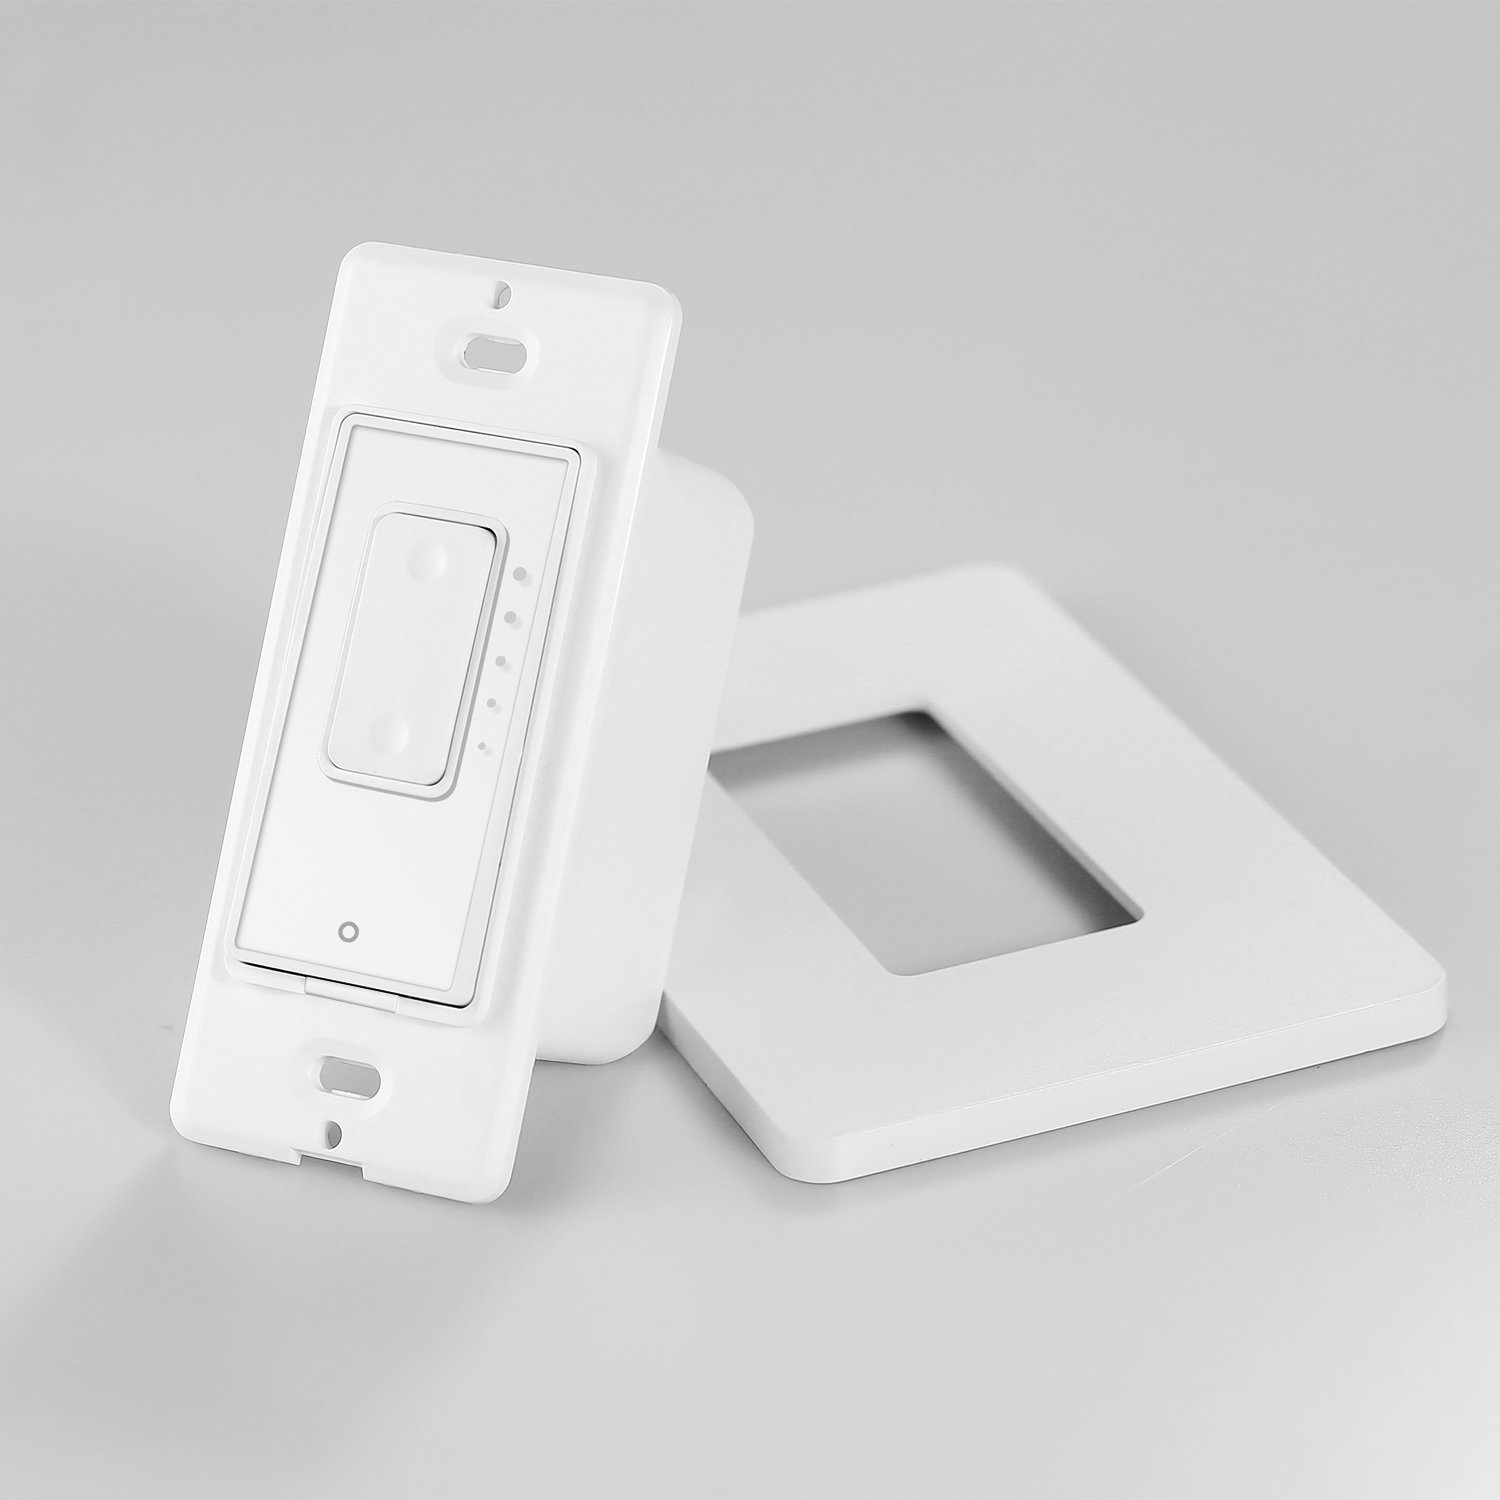 Smart Dimmer Switch by Martin Jerry | SmartLife App, Mains Dimming ...